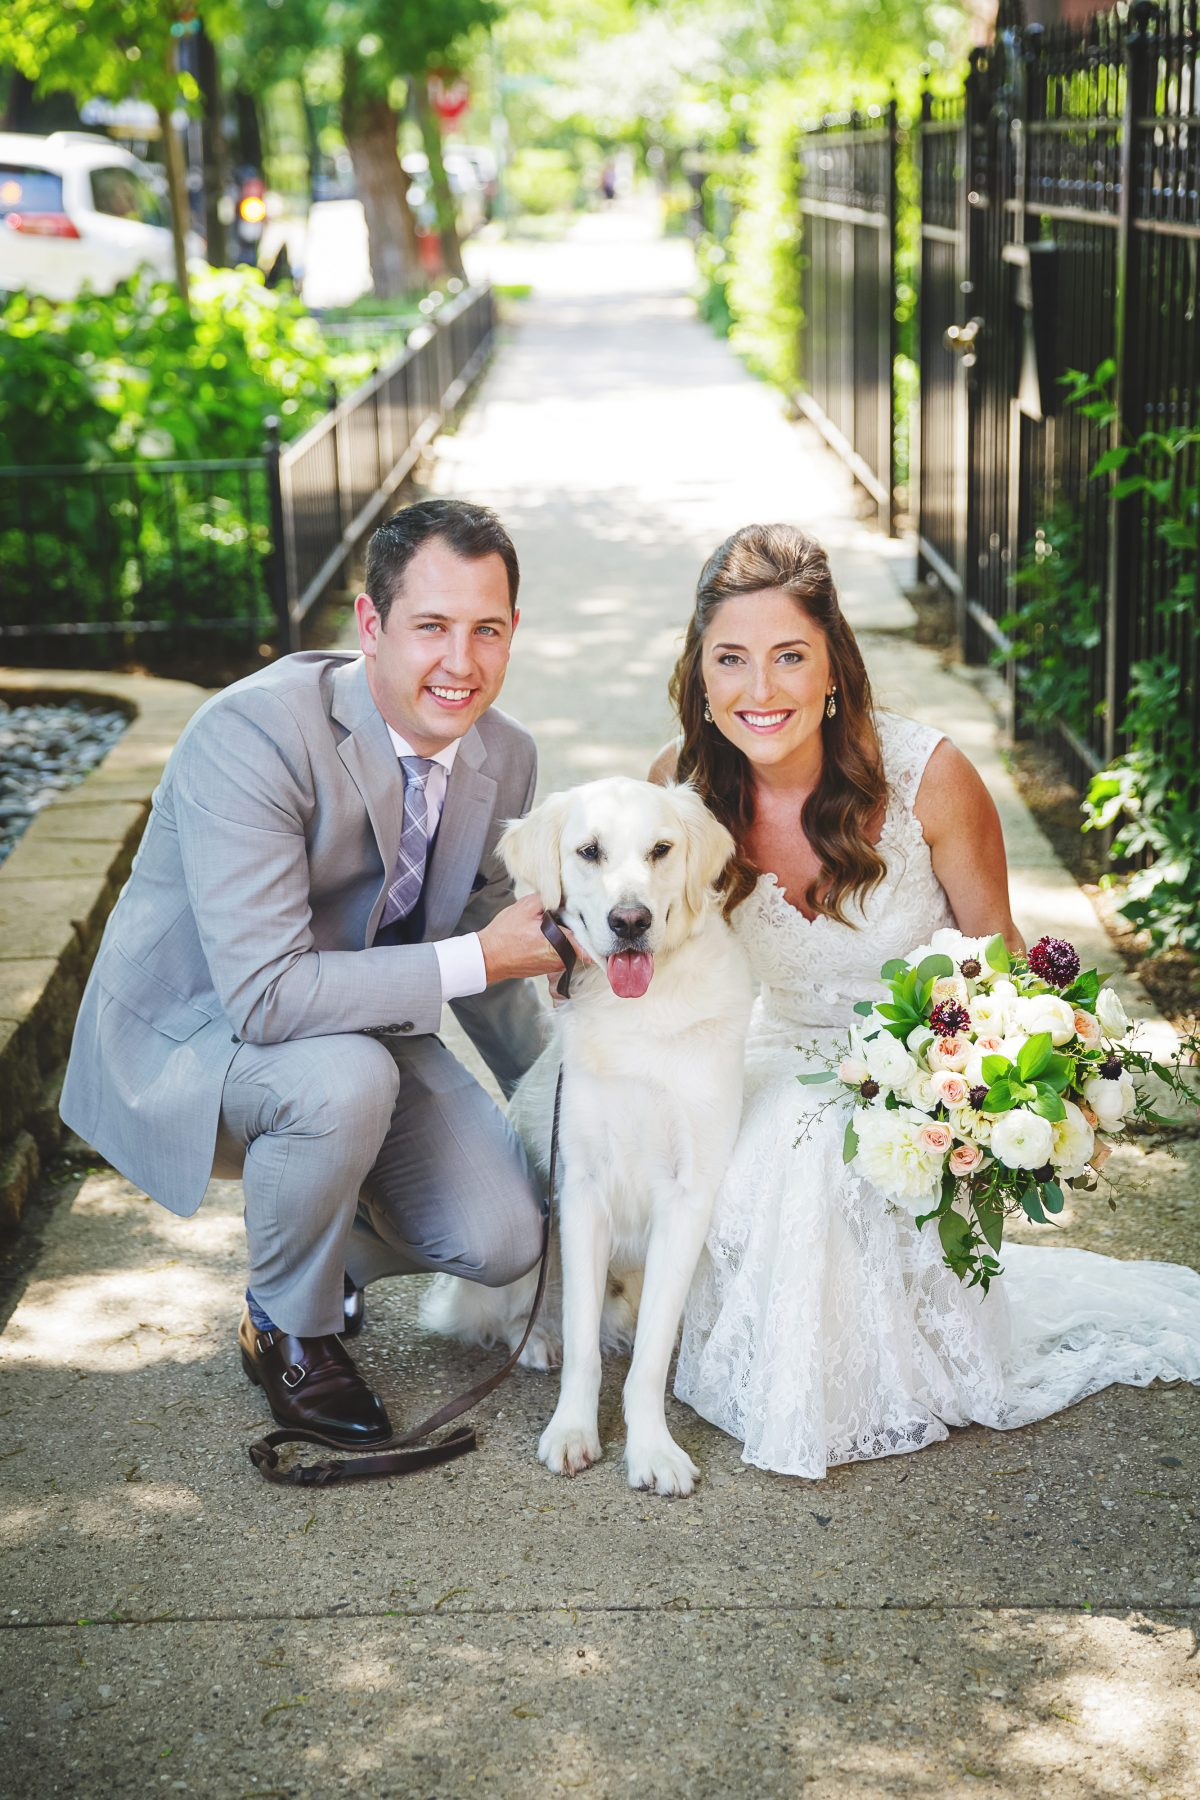 Chicago Bride and Groom with Dog